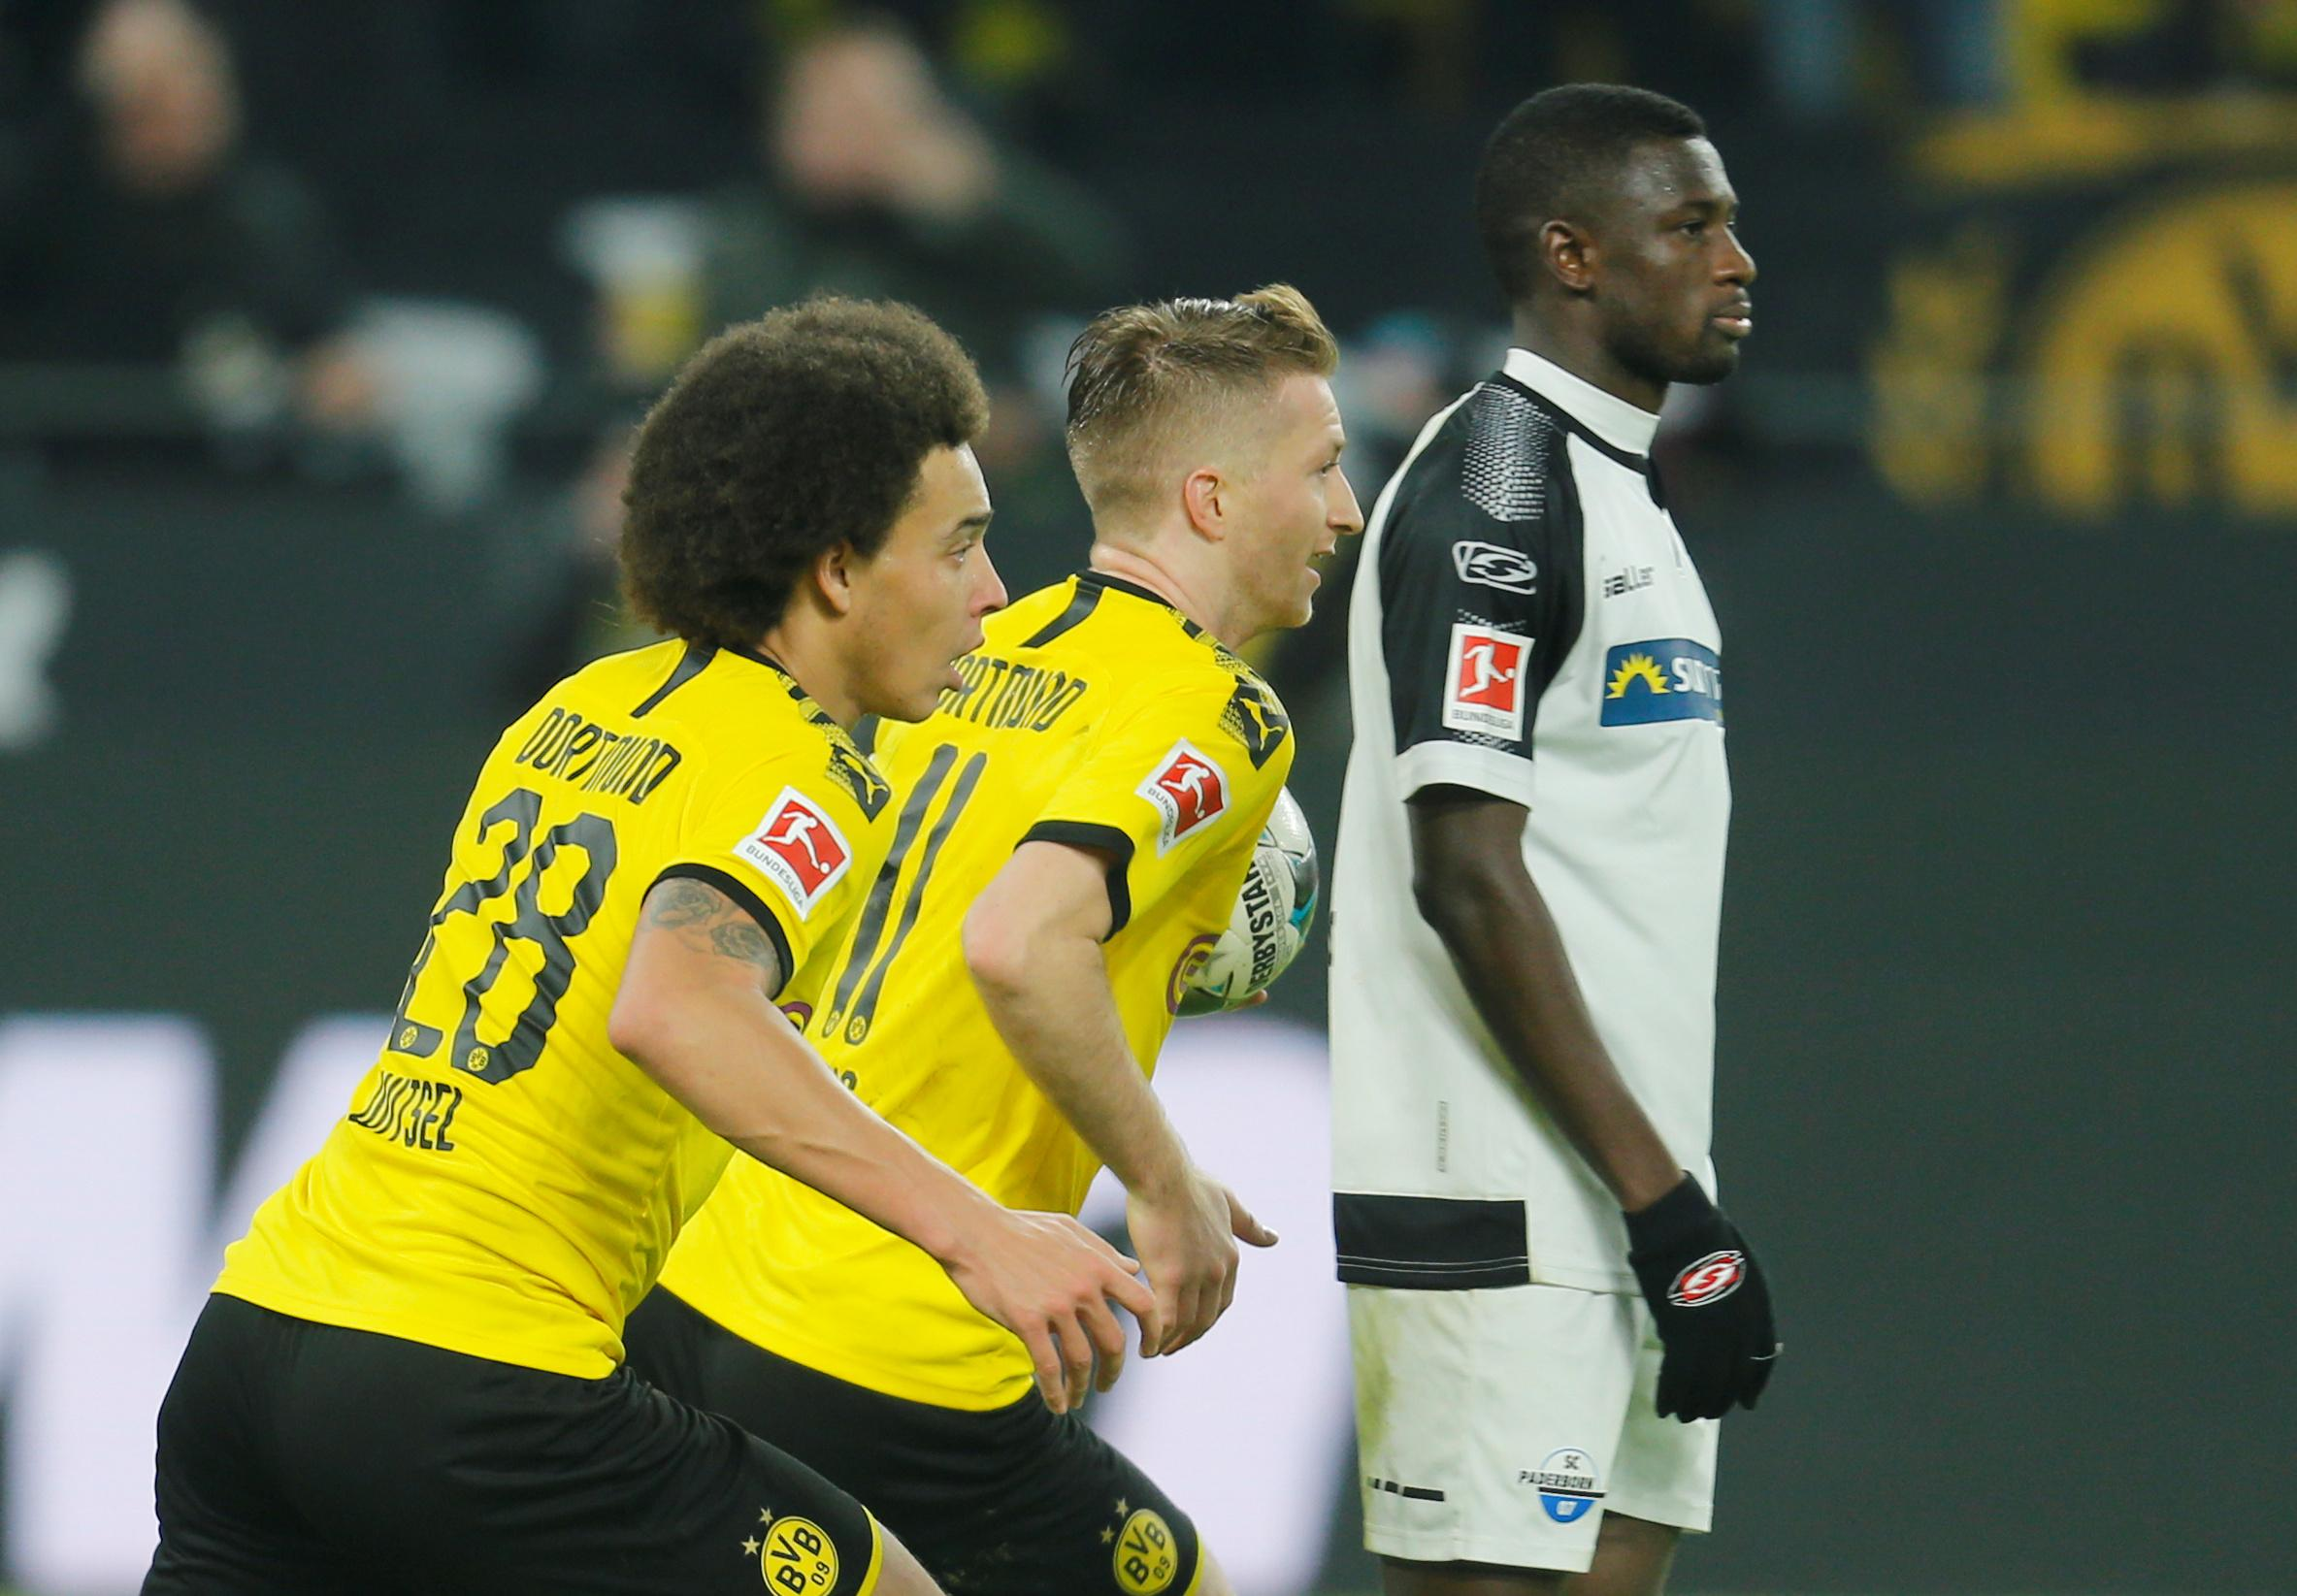 Comeback kings Dortmund rescue 3-3 draw against Paderborn